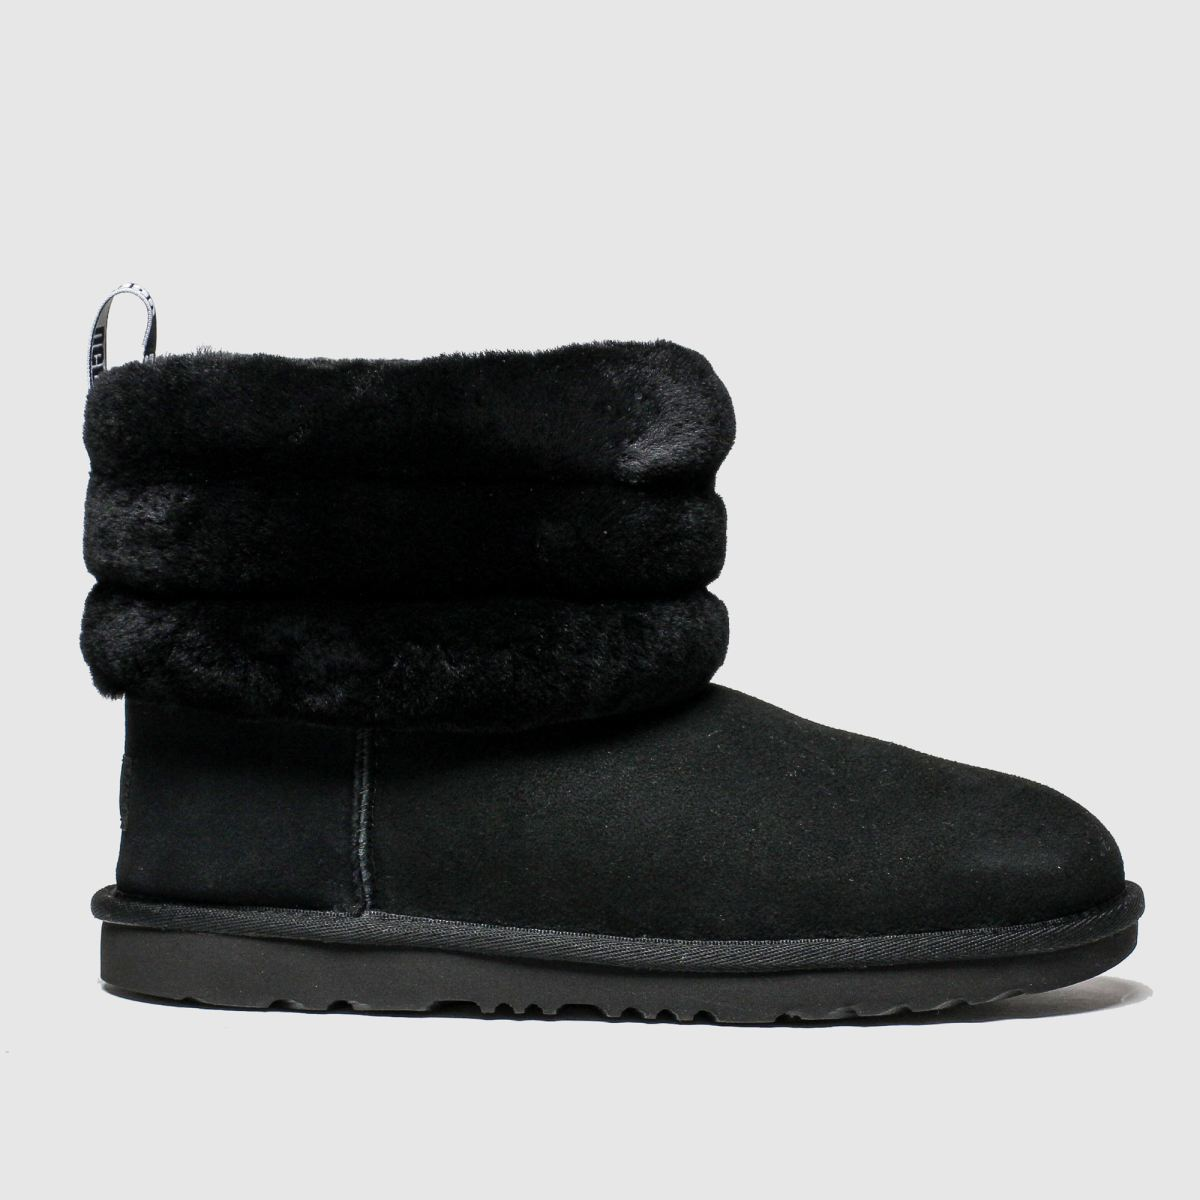 Ugg Black Fluff Mini Quilted Boots Youth